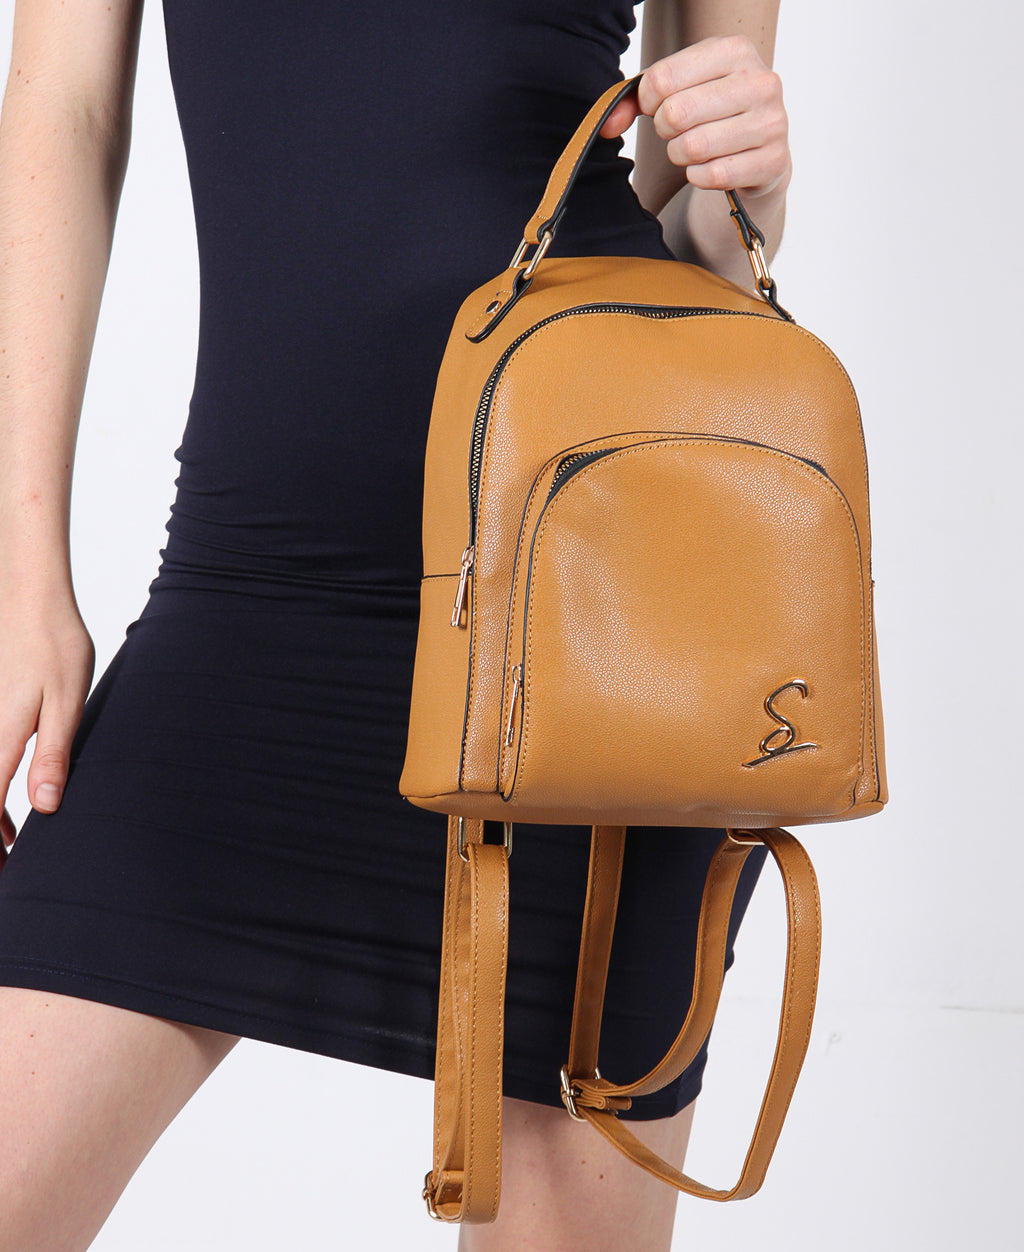 Double Compartment Backpack - Tan